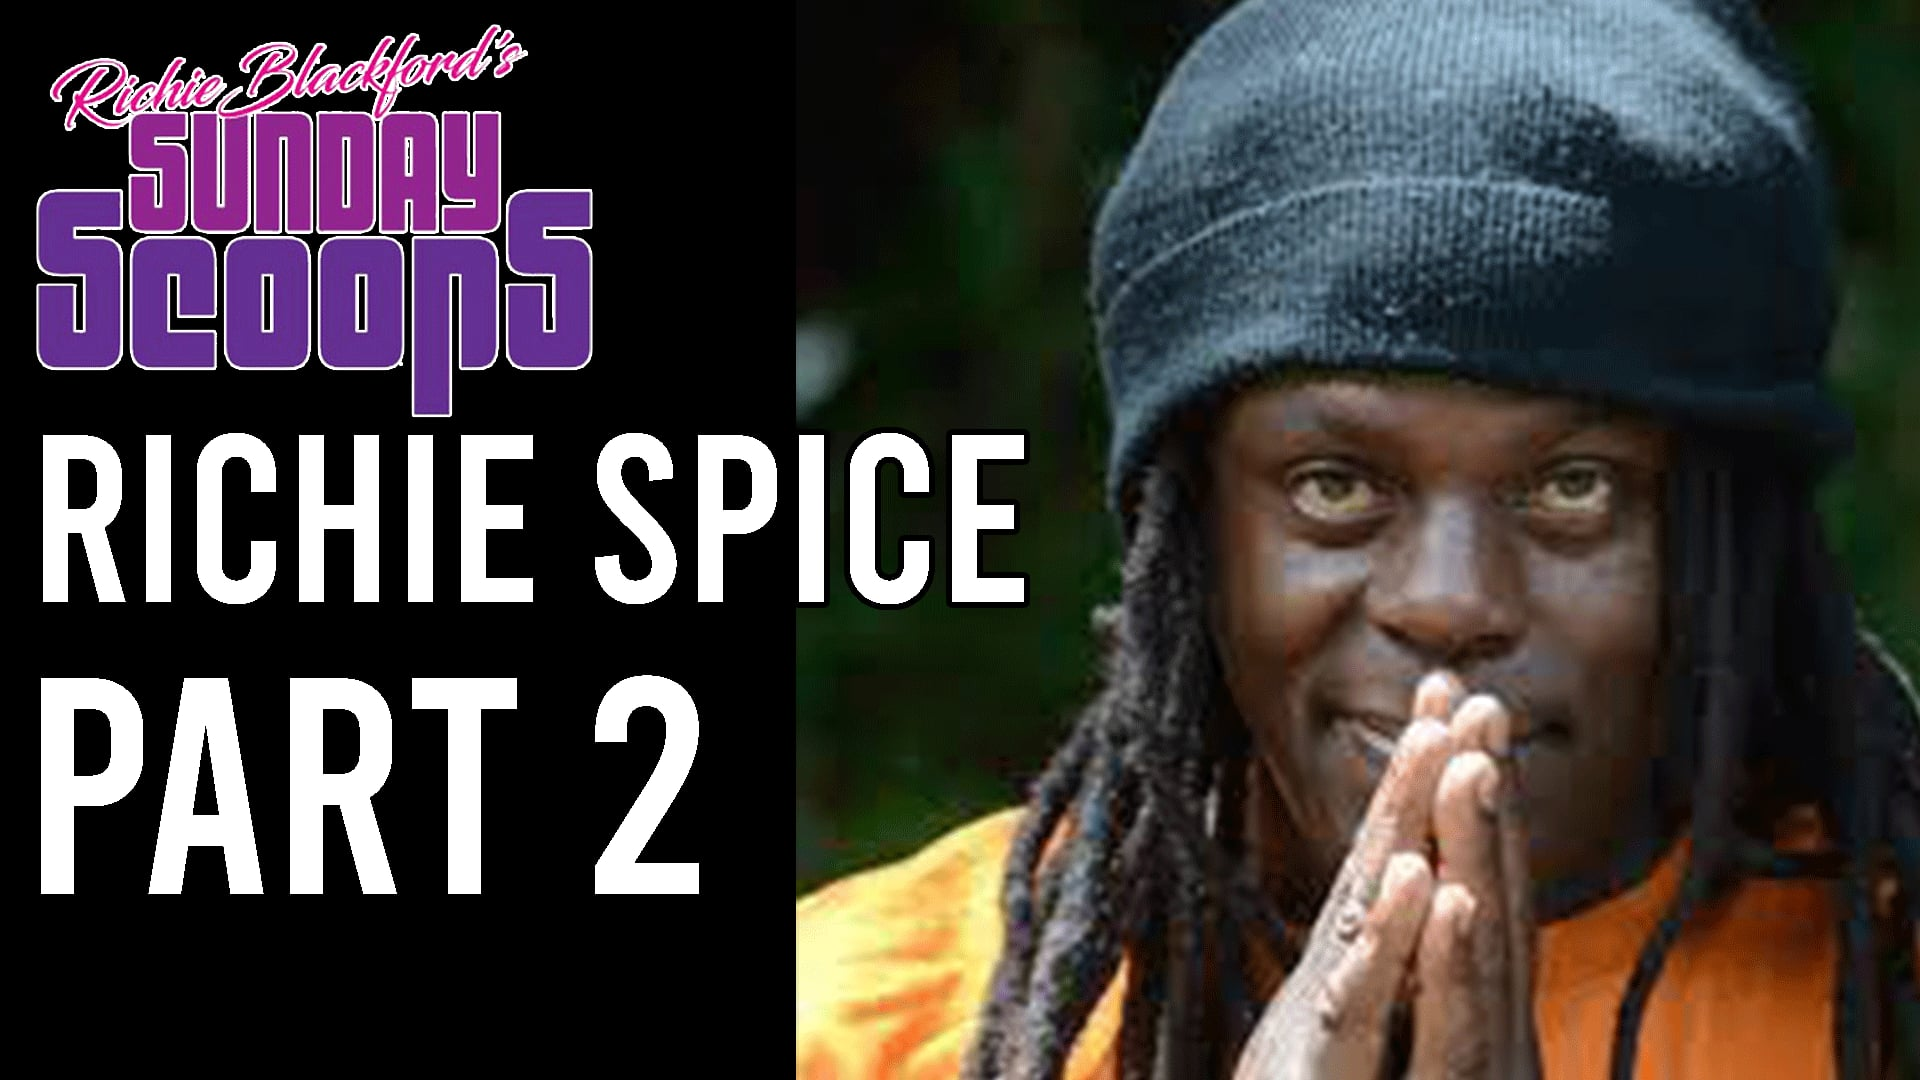 Sunday Scoops Bitty Mclean Richie Spice 4